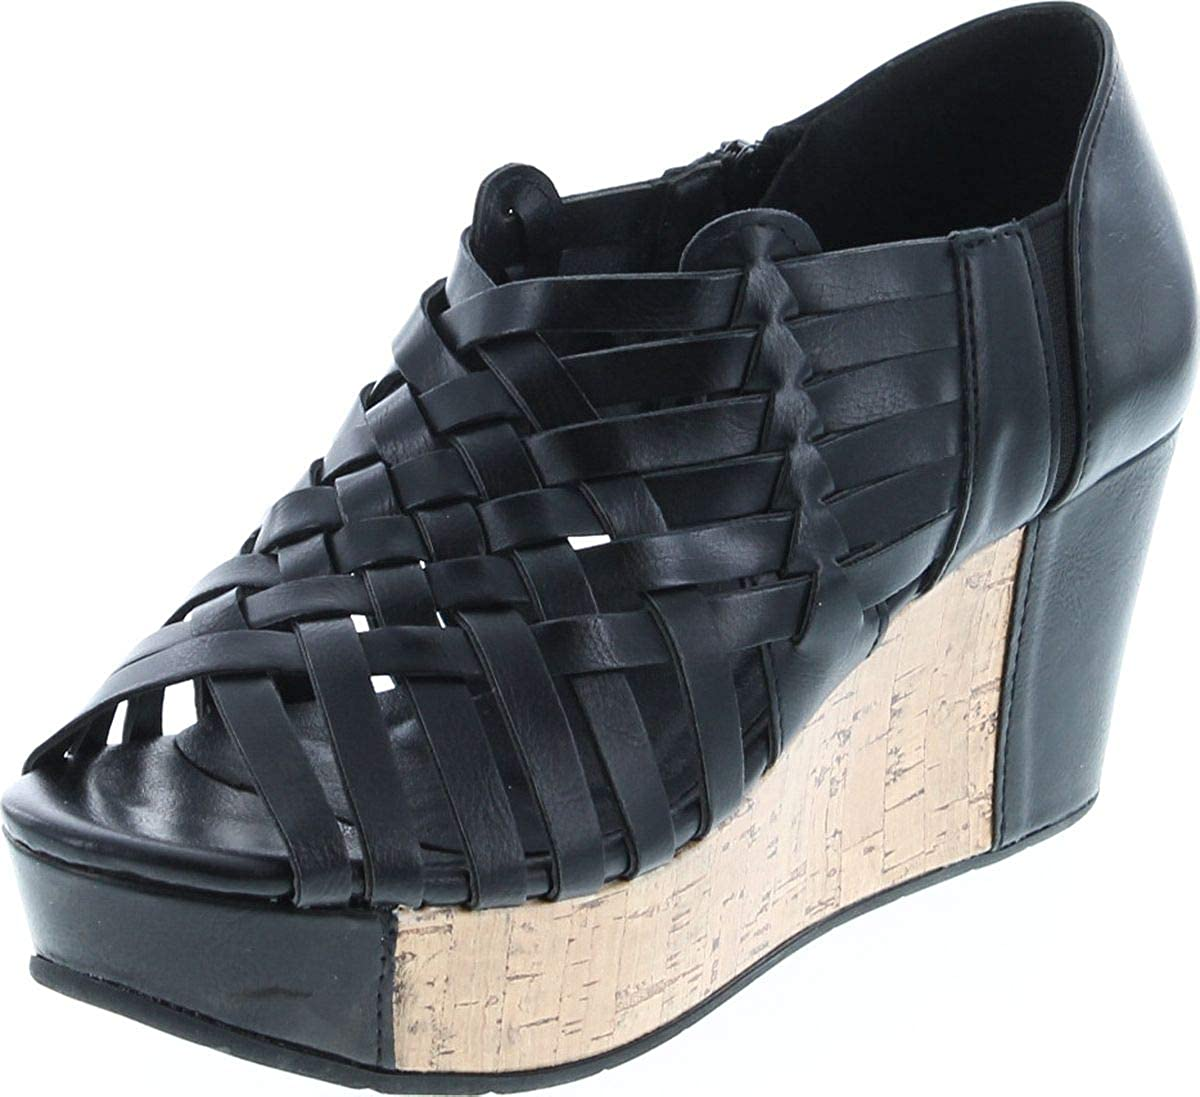 Pierre Max 66% OFF Dumas Women's Direct sale of manufacturer Natural-1 Vegan Criss Cross Leather Strappy